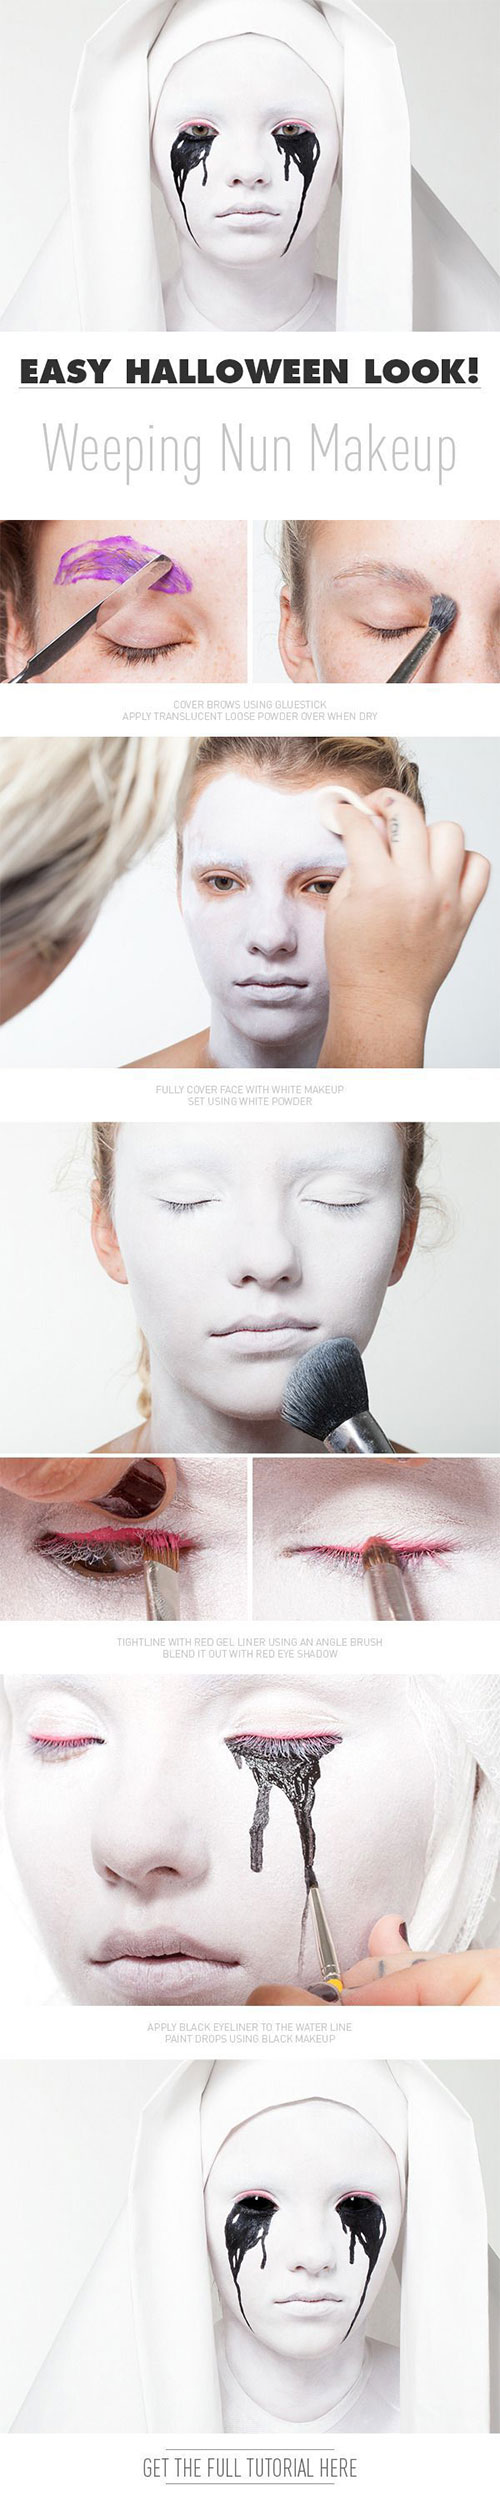 15-Best-Easy-Halloween-Makeup-Tutorials-For-Beginners-Learners-2015-9